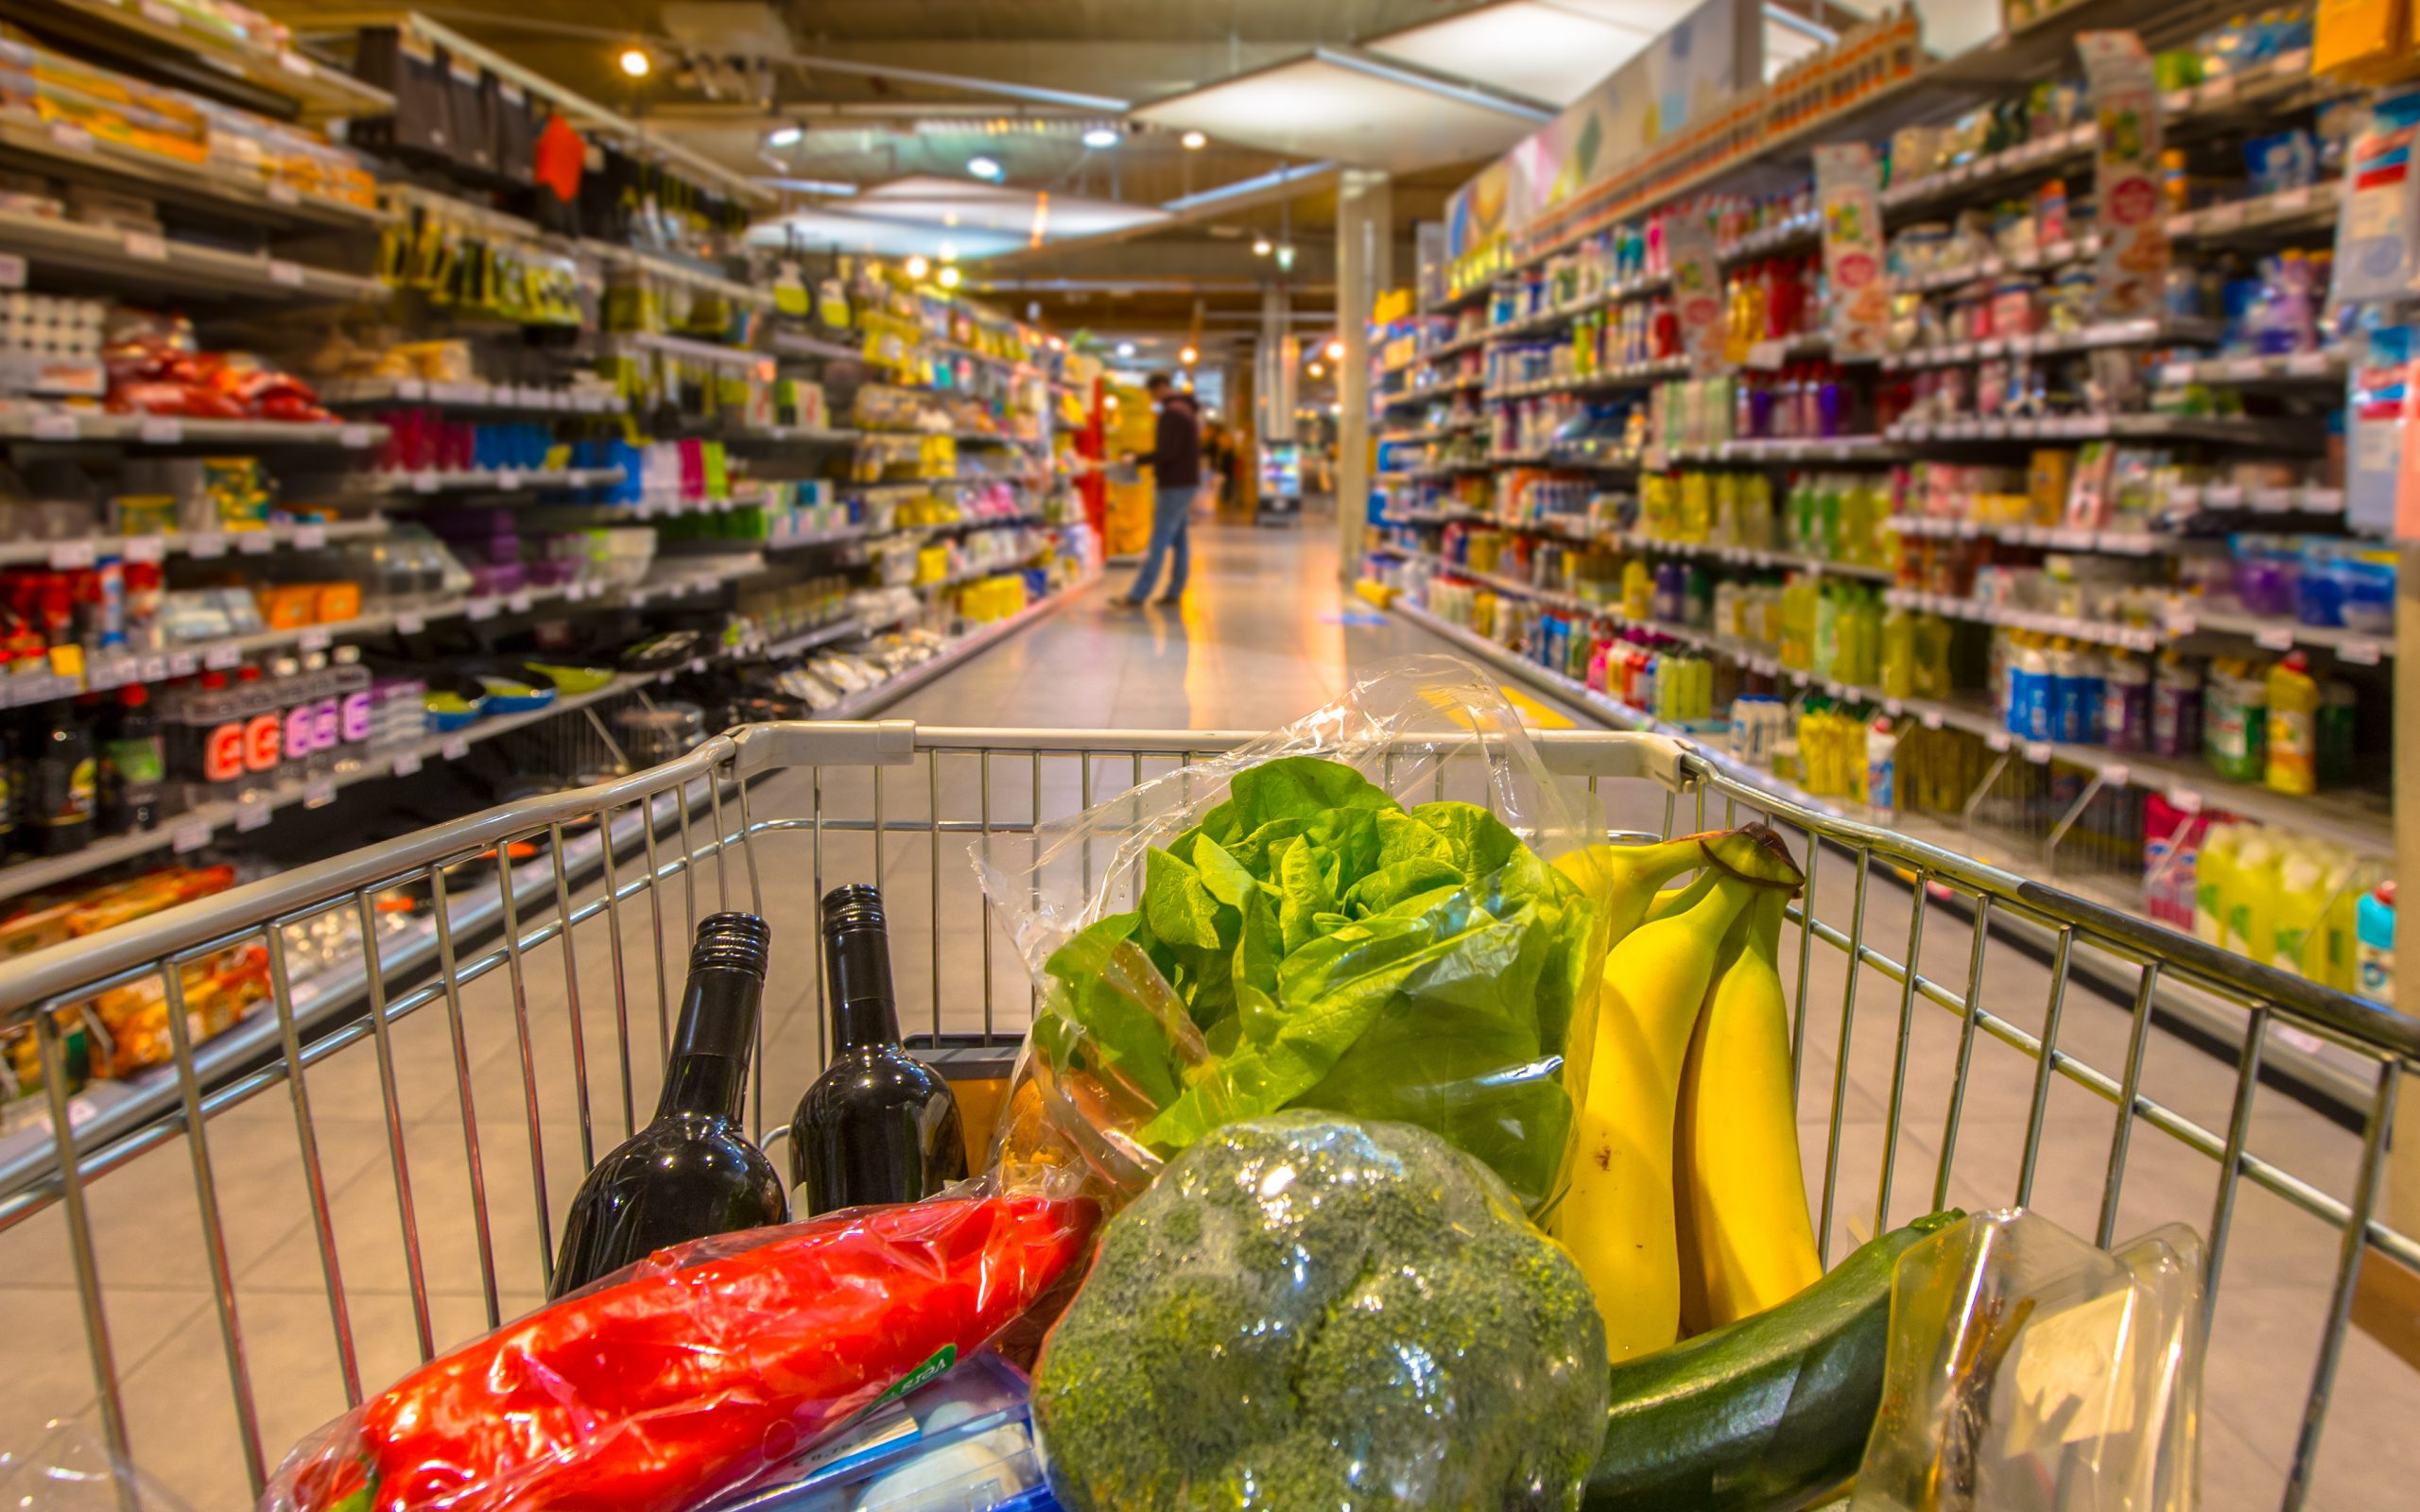 Lockdown Drives Up Grocery Sales in NI – Symbols increase market share – Sainsbury's out performs Tesco